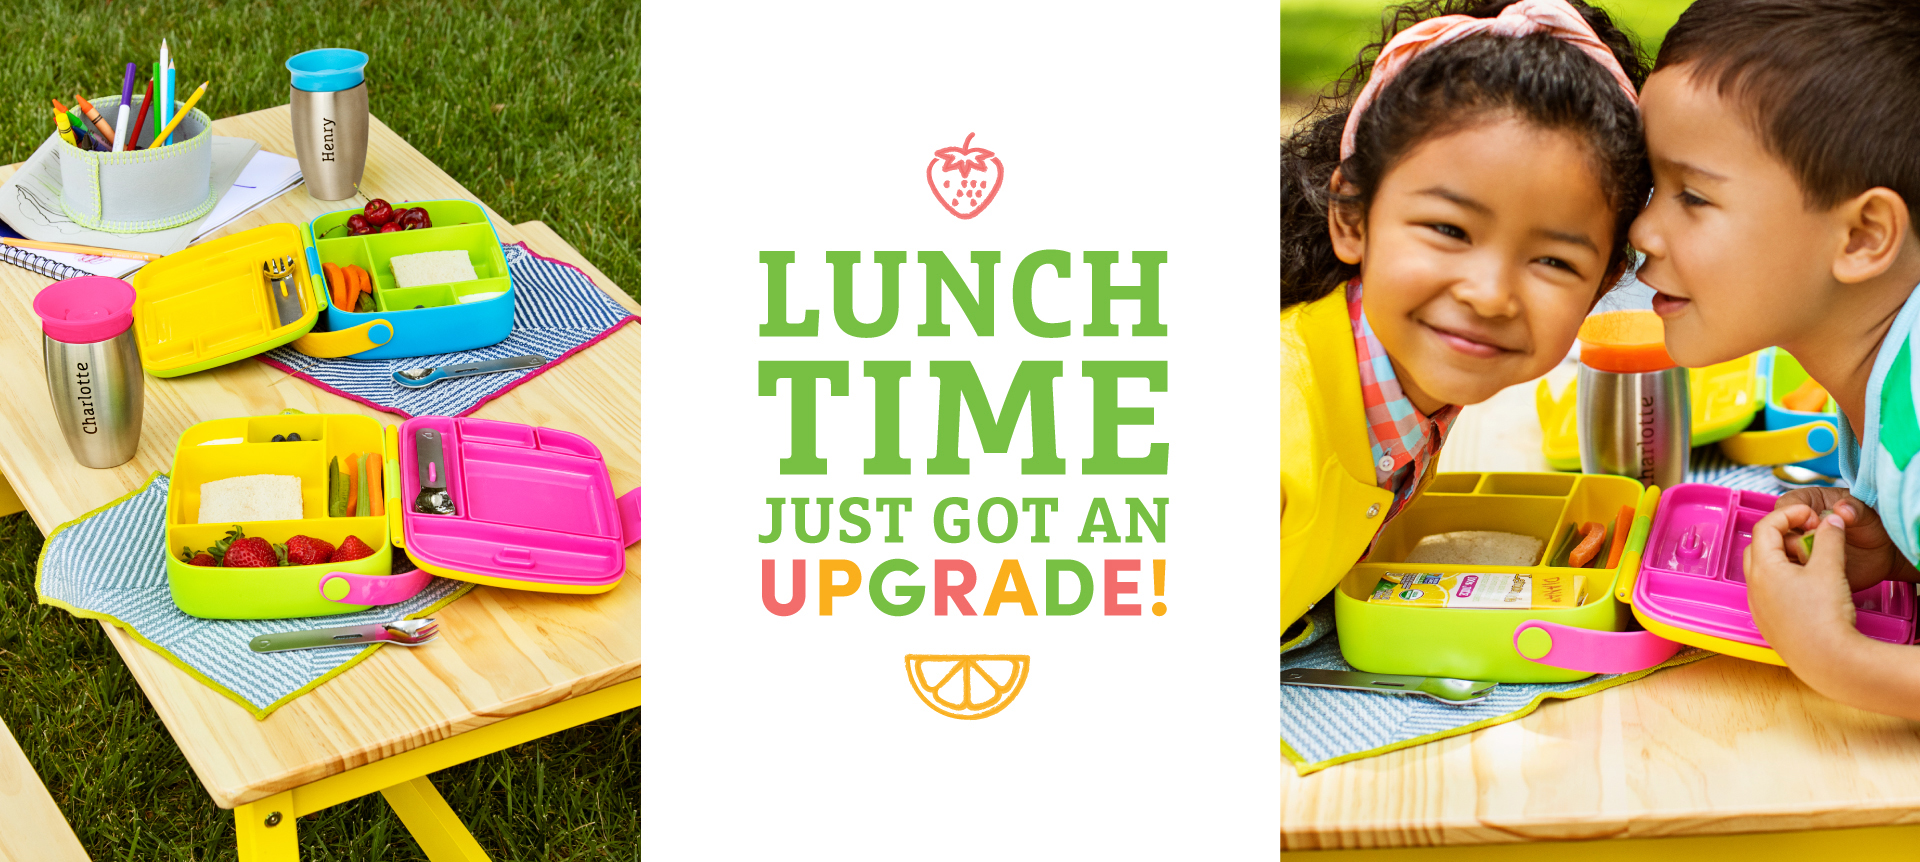 Lunch Time just got an upgrade!